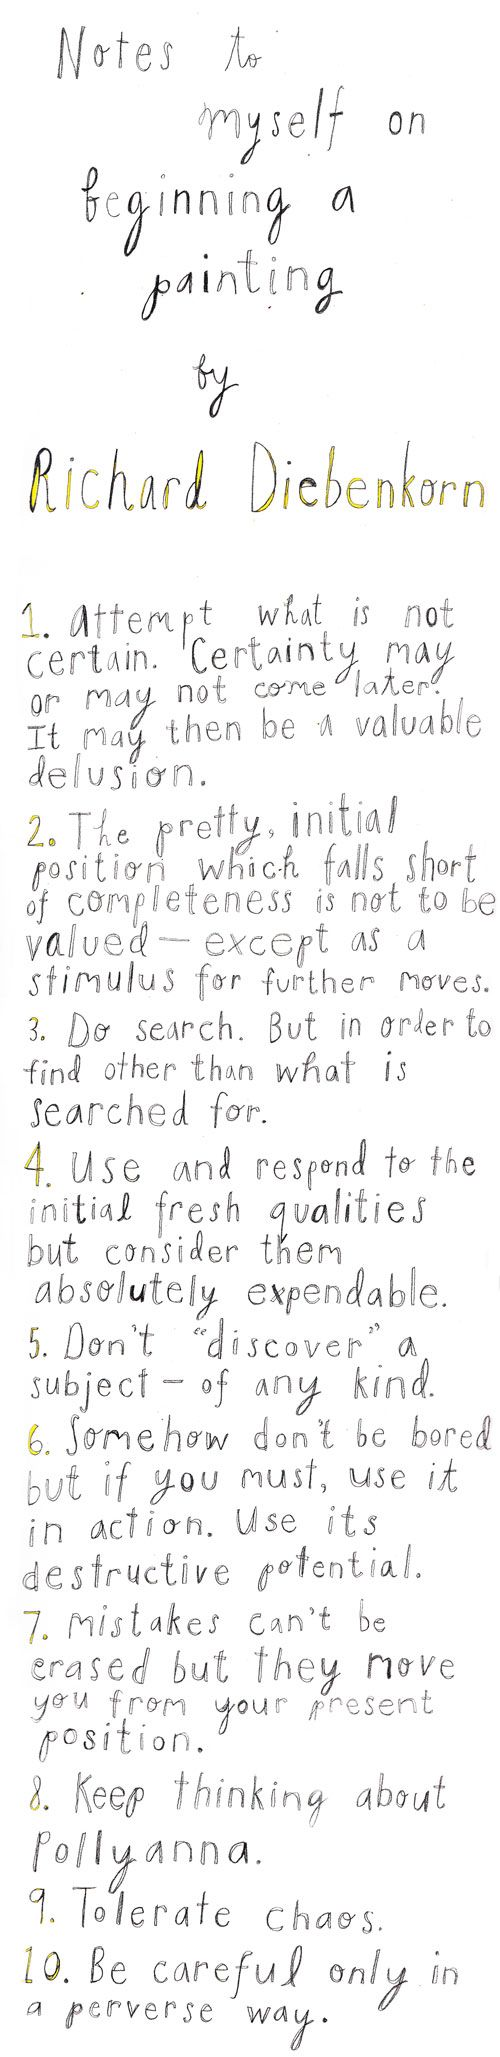 10 Rules for Creative Projects from Iconic Painter Richard Diebenkorn | Brain Pickings